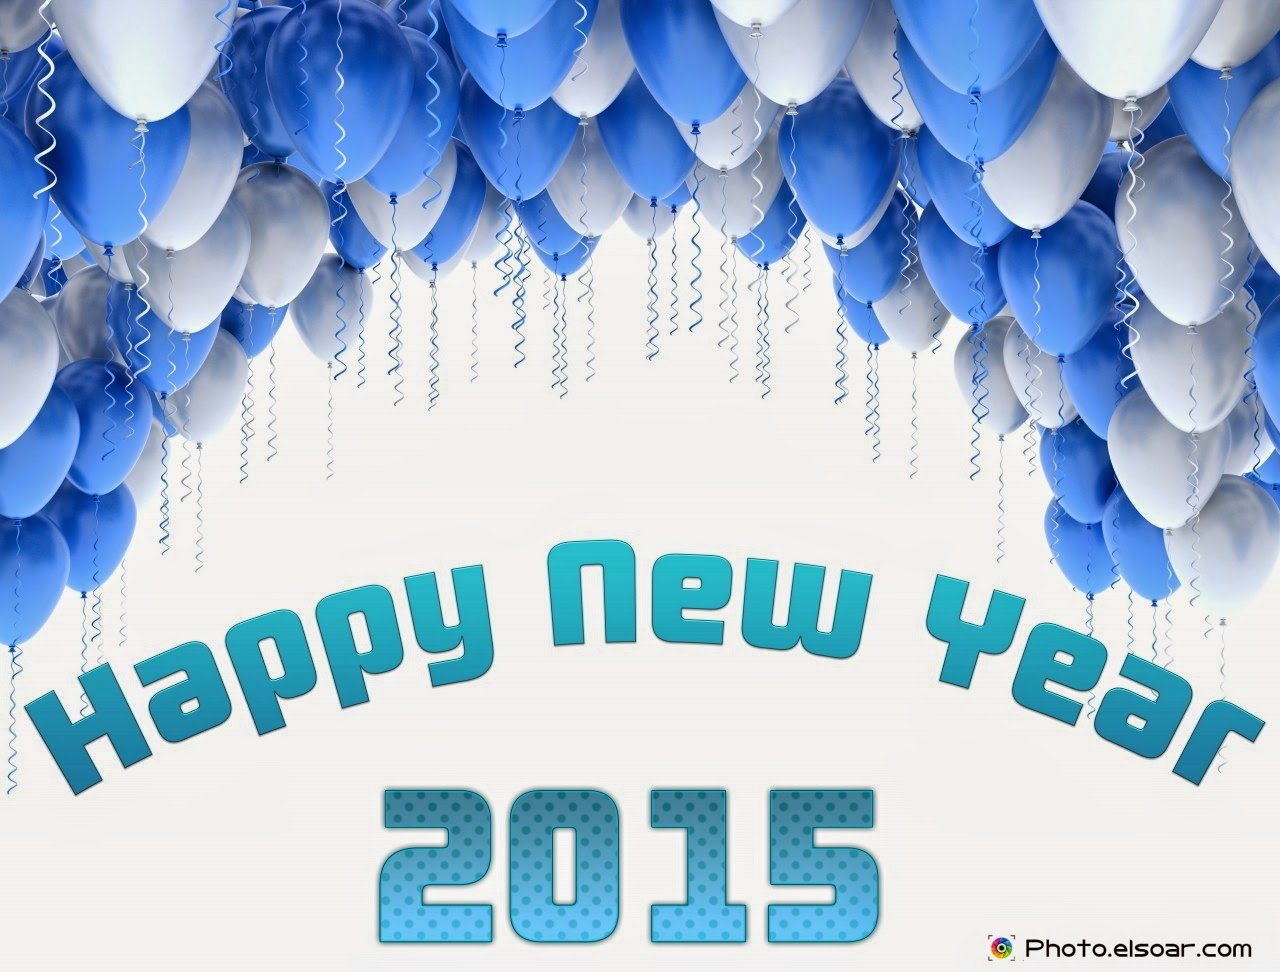 happy new year 2015 wallpapers - happy new year 2015